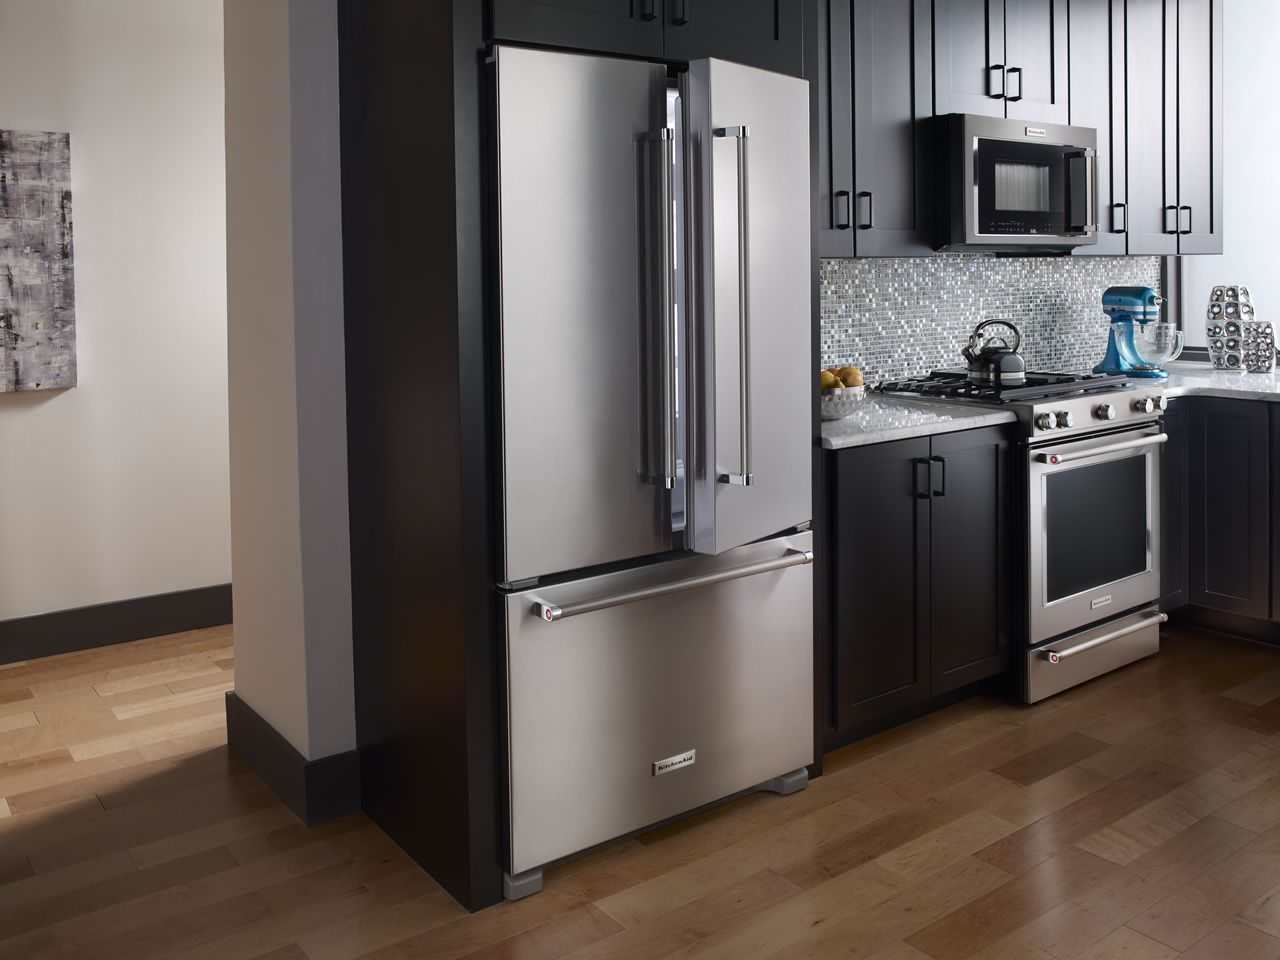 Enjoy The Beauty Of Kitchenaid Stainless Steel Home Appliances